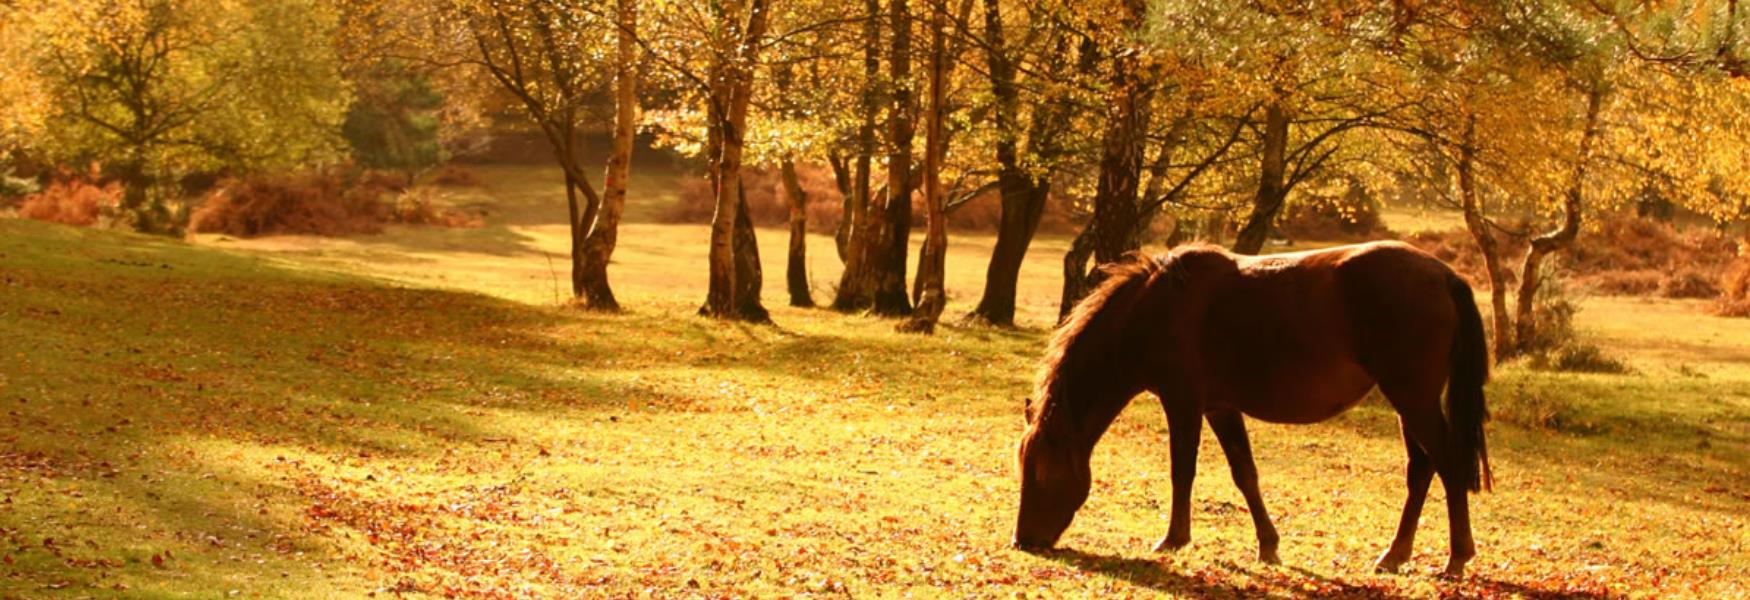 new forest pony grazing in the autumn in the new forest